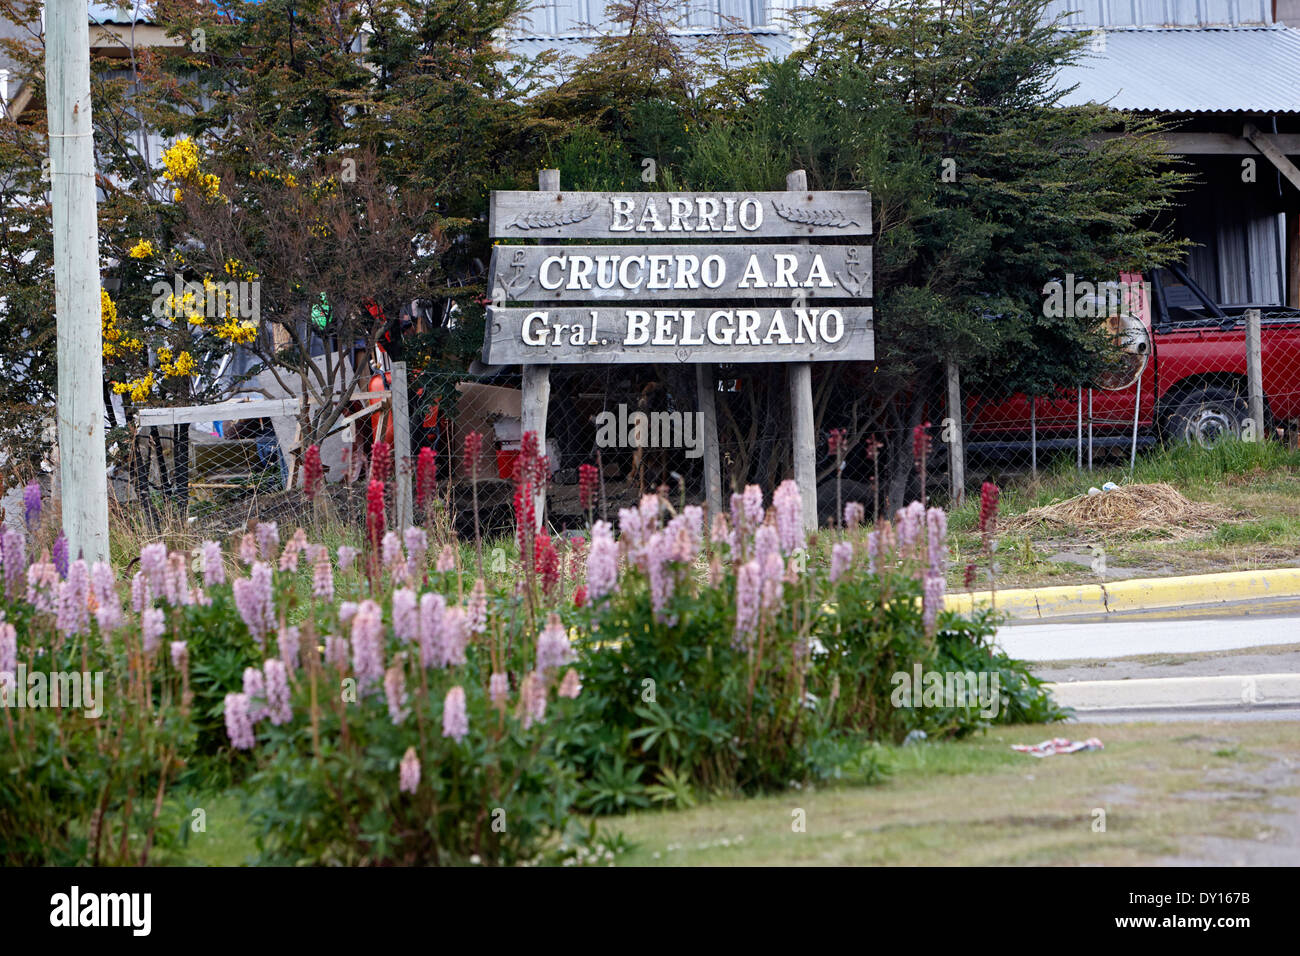 barrio general belgrano area memorial ushuaia argentina ushuaia was the home port of the belgrano cruiser sunk in the falklands war - Stock Image